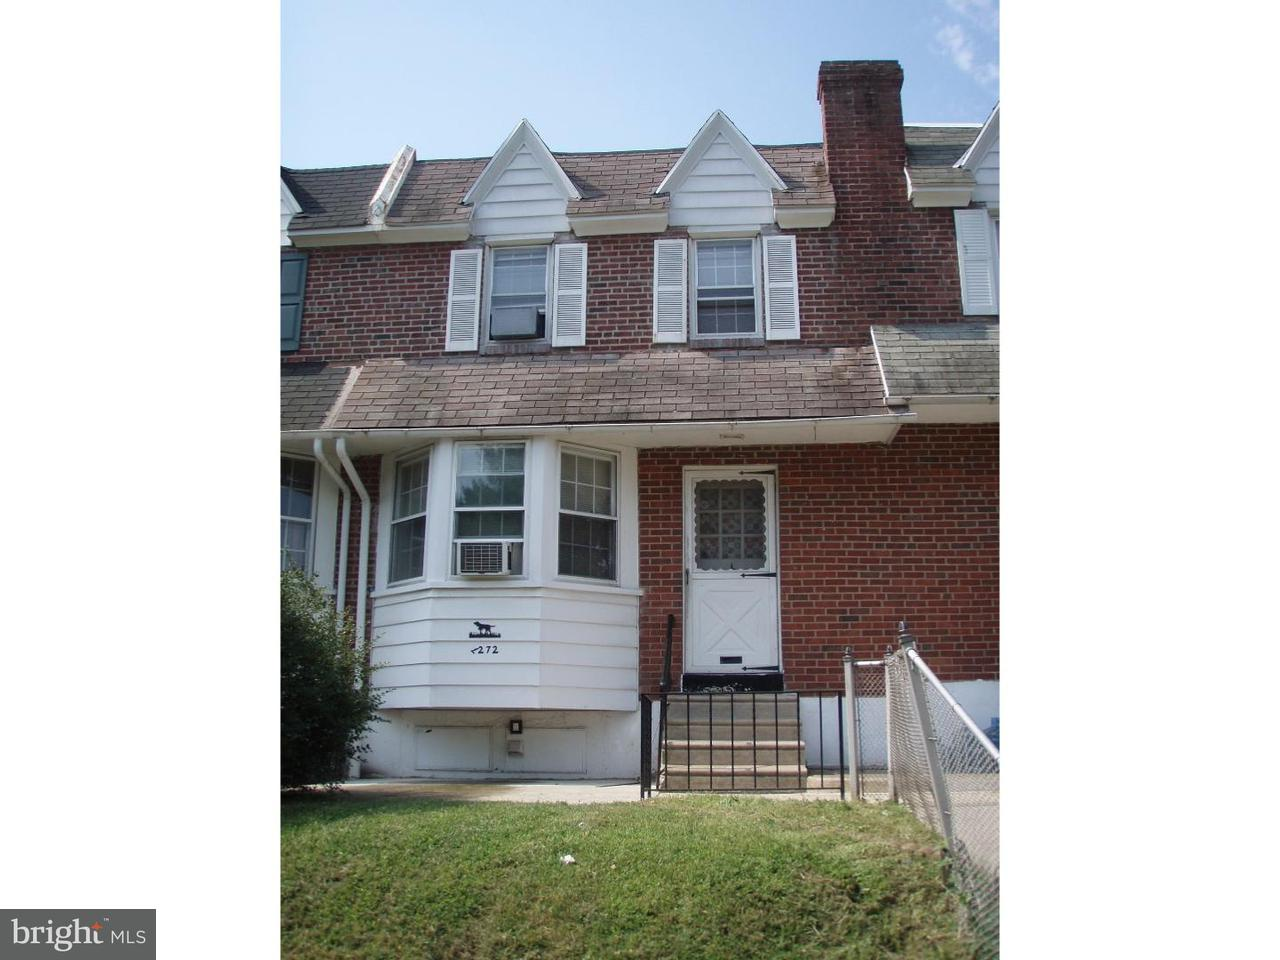 7272  Lamport Upper Darby , PA 19082